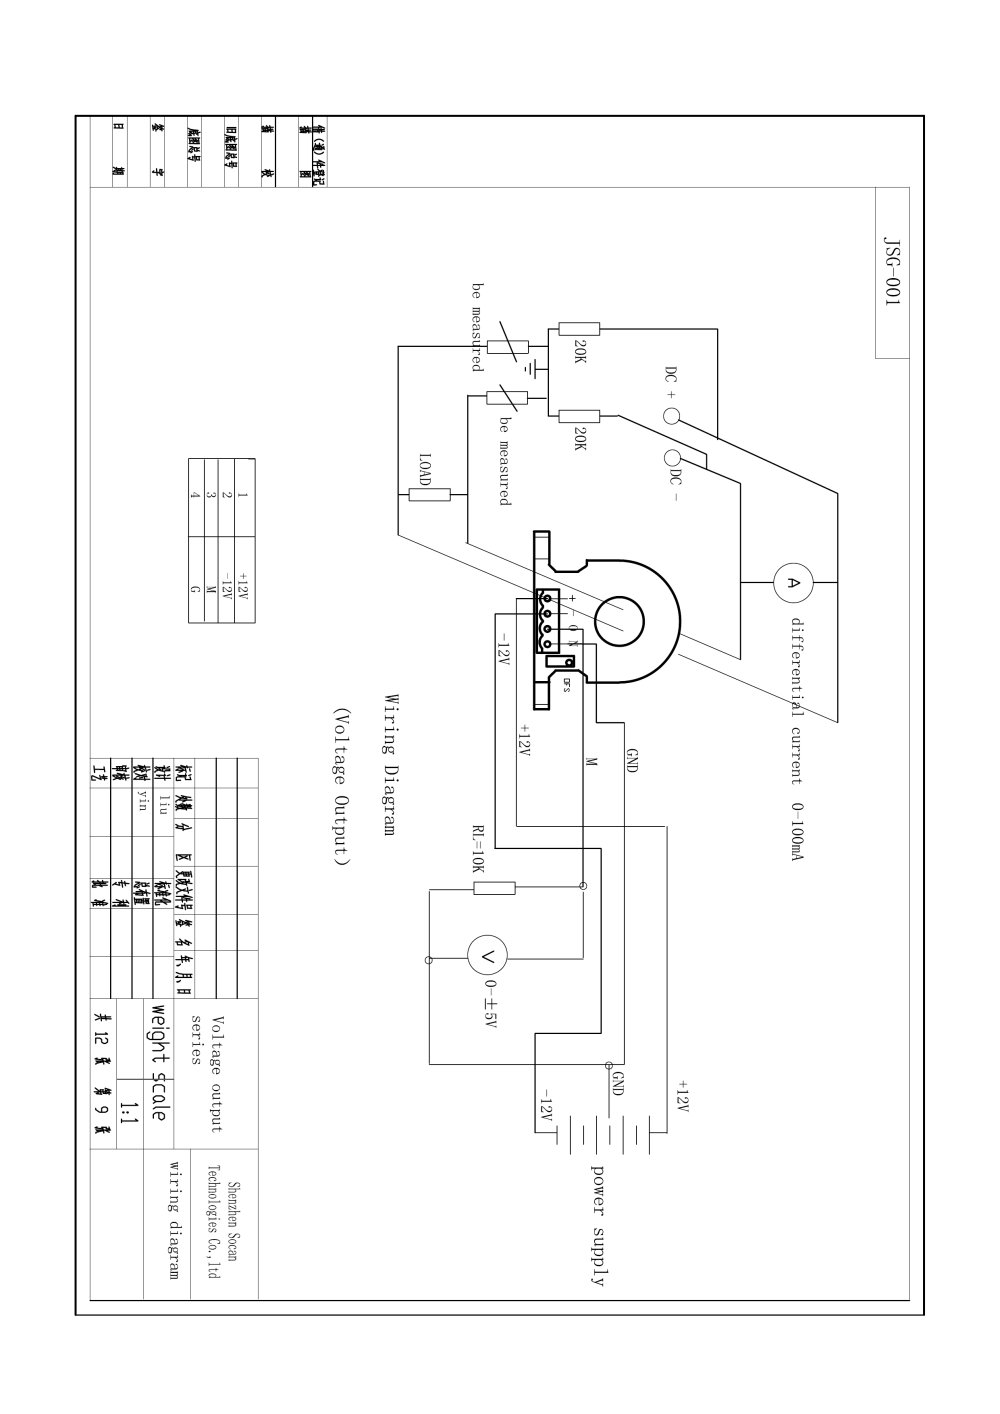 Current Transducer Wiring Diagram Simple Electrical Sensor Circuit Page 15 Sensors Detectors Circuits Nextgr Dc Leakage Scd Series Shenzhen Socan Software